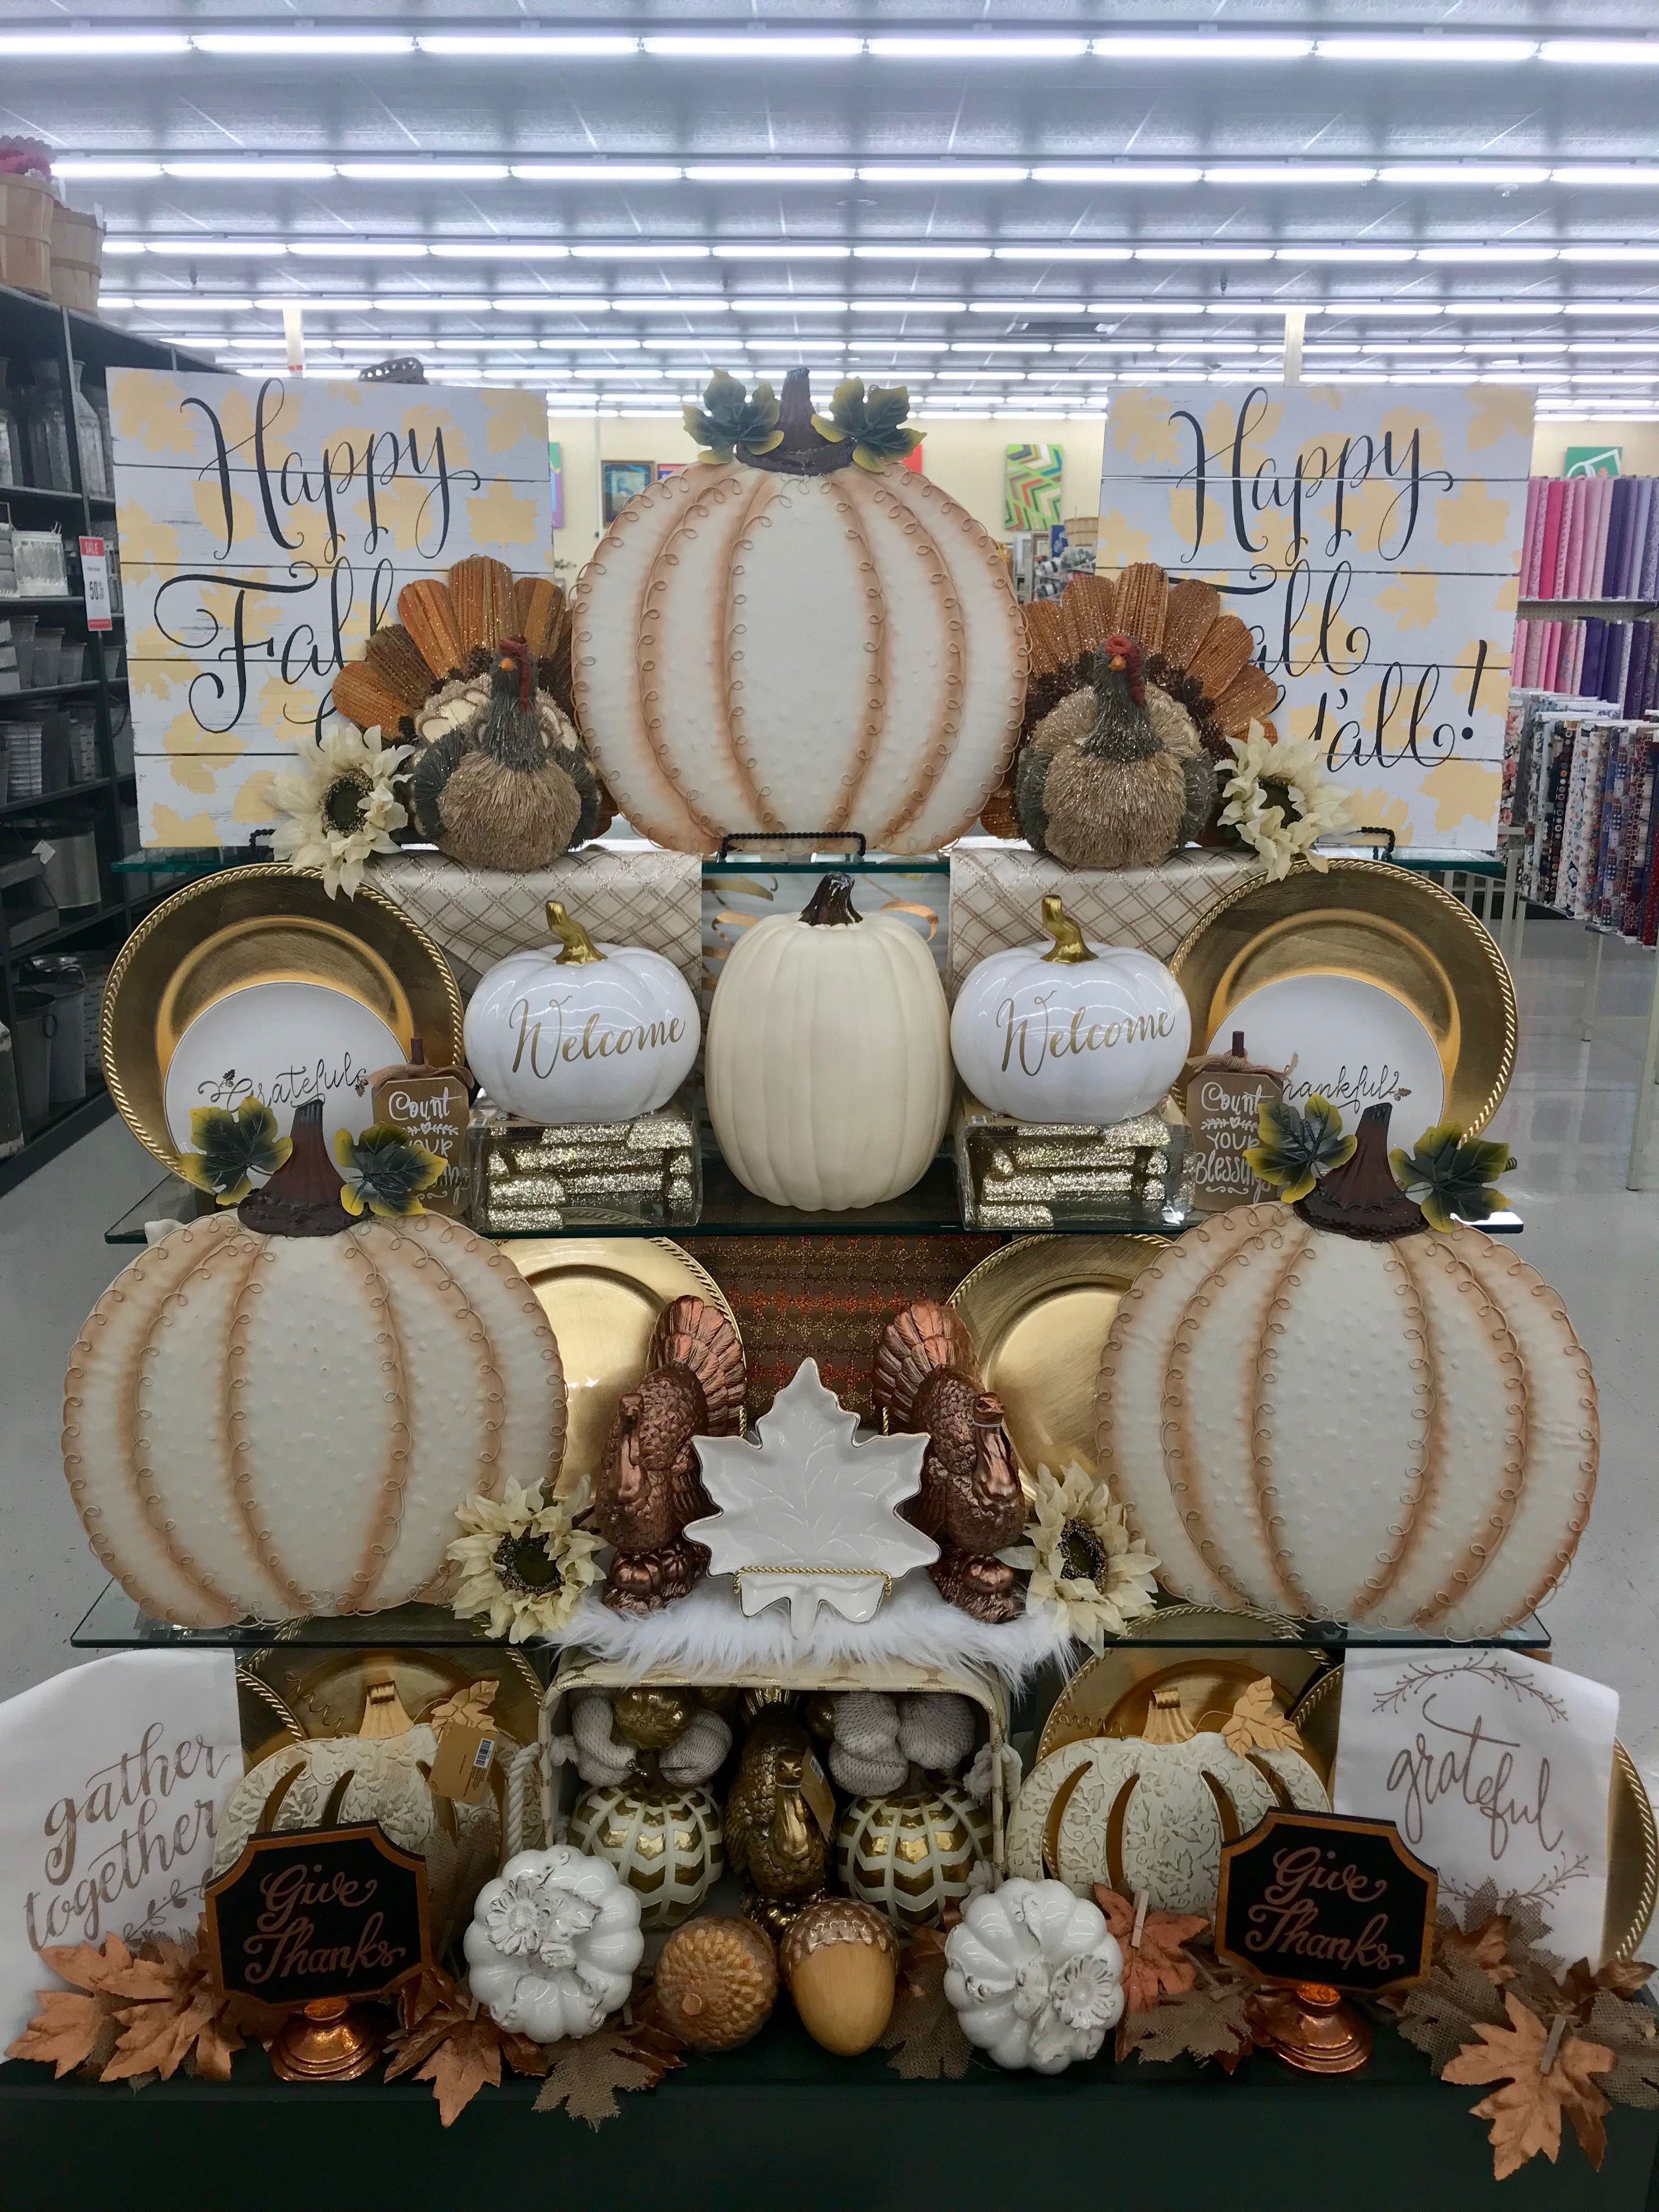 Pin by Natalie Duckworth Wright on Hobby Lobby (With